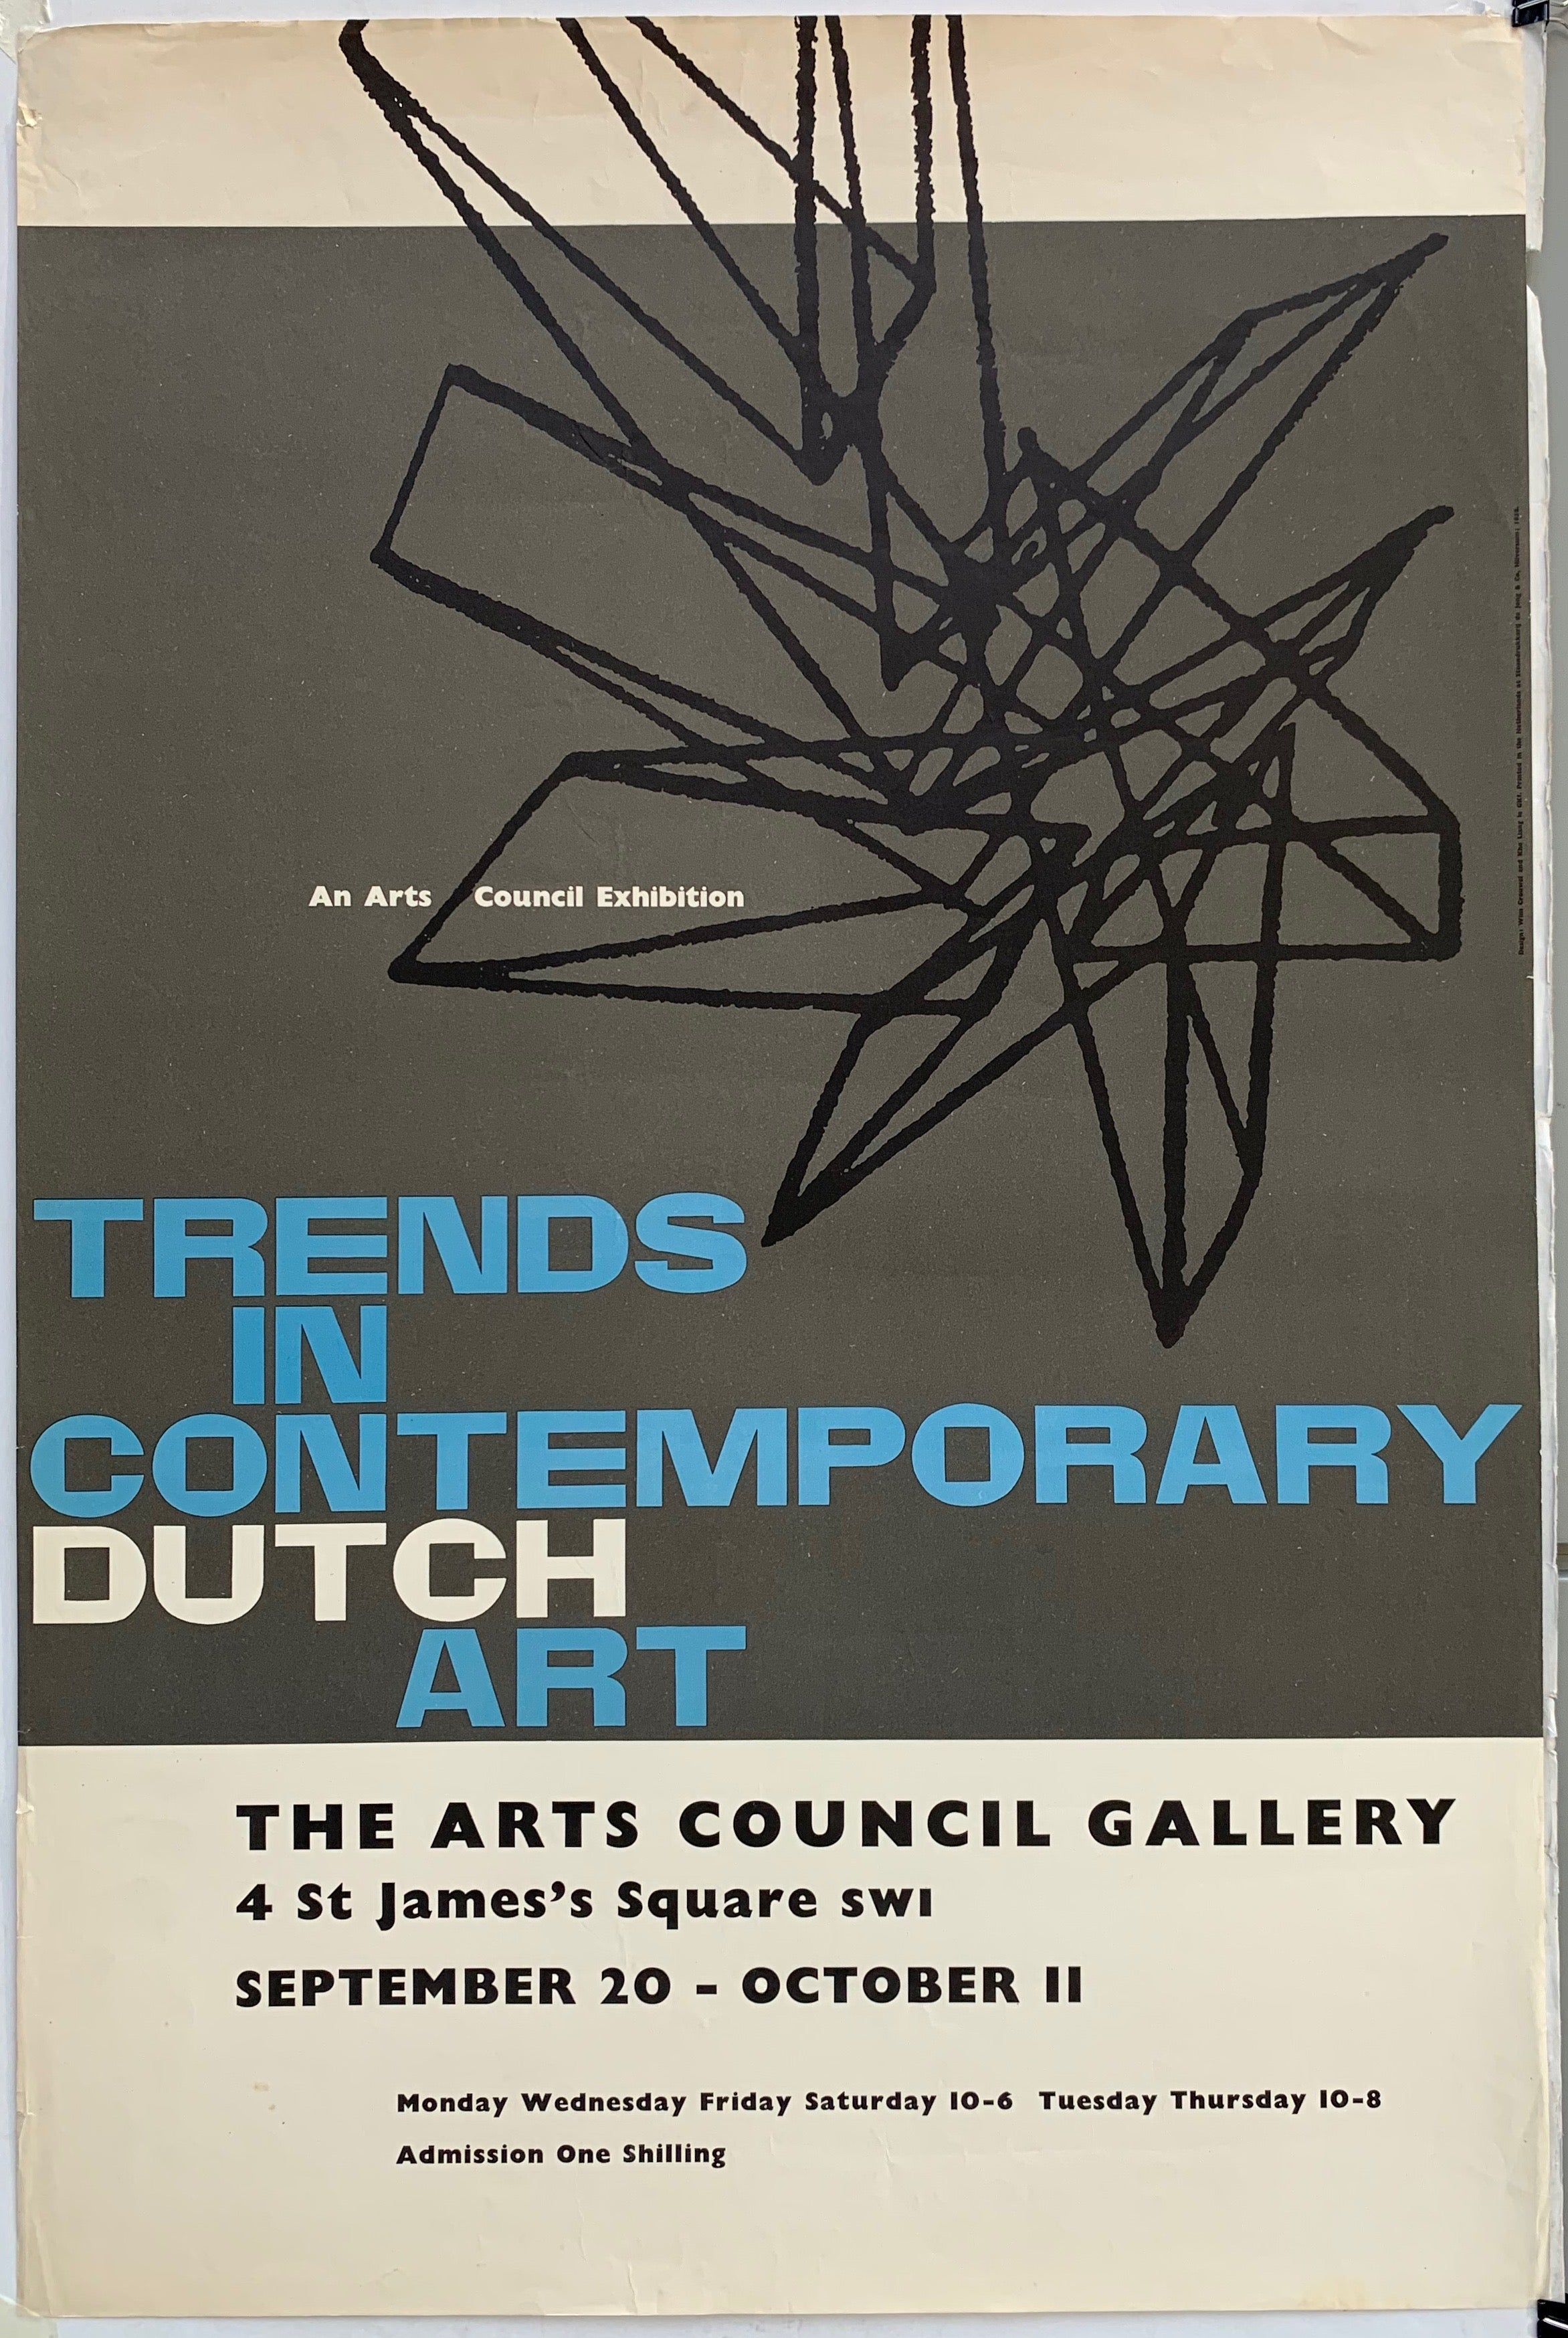 Trends in Contemporary Dutch Art